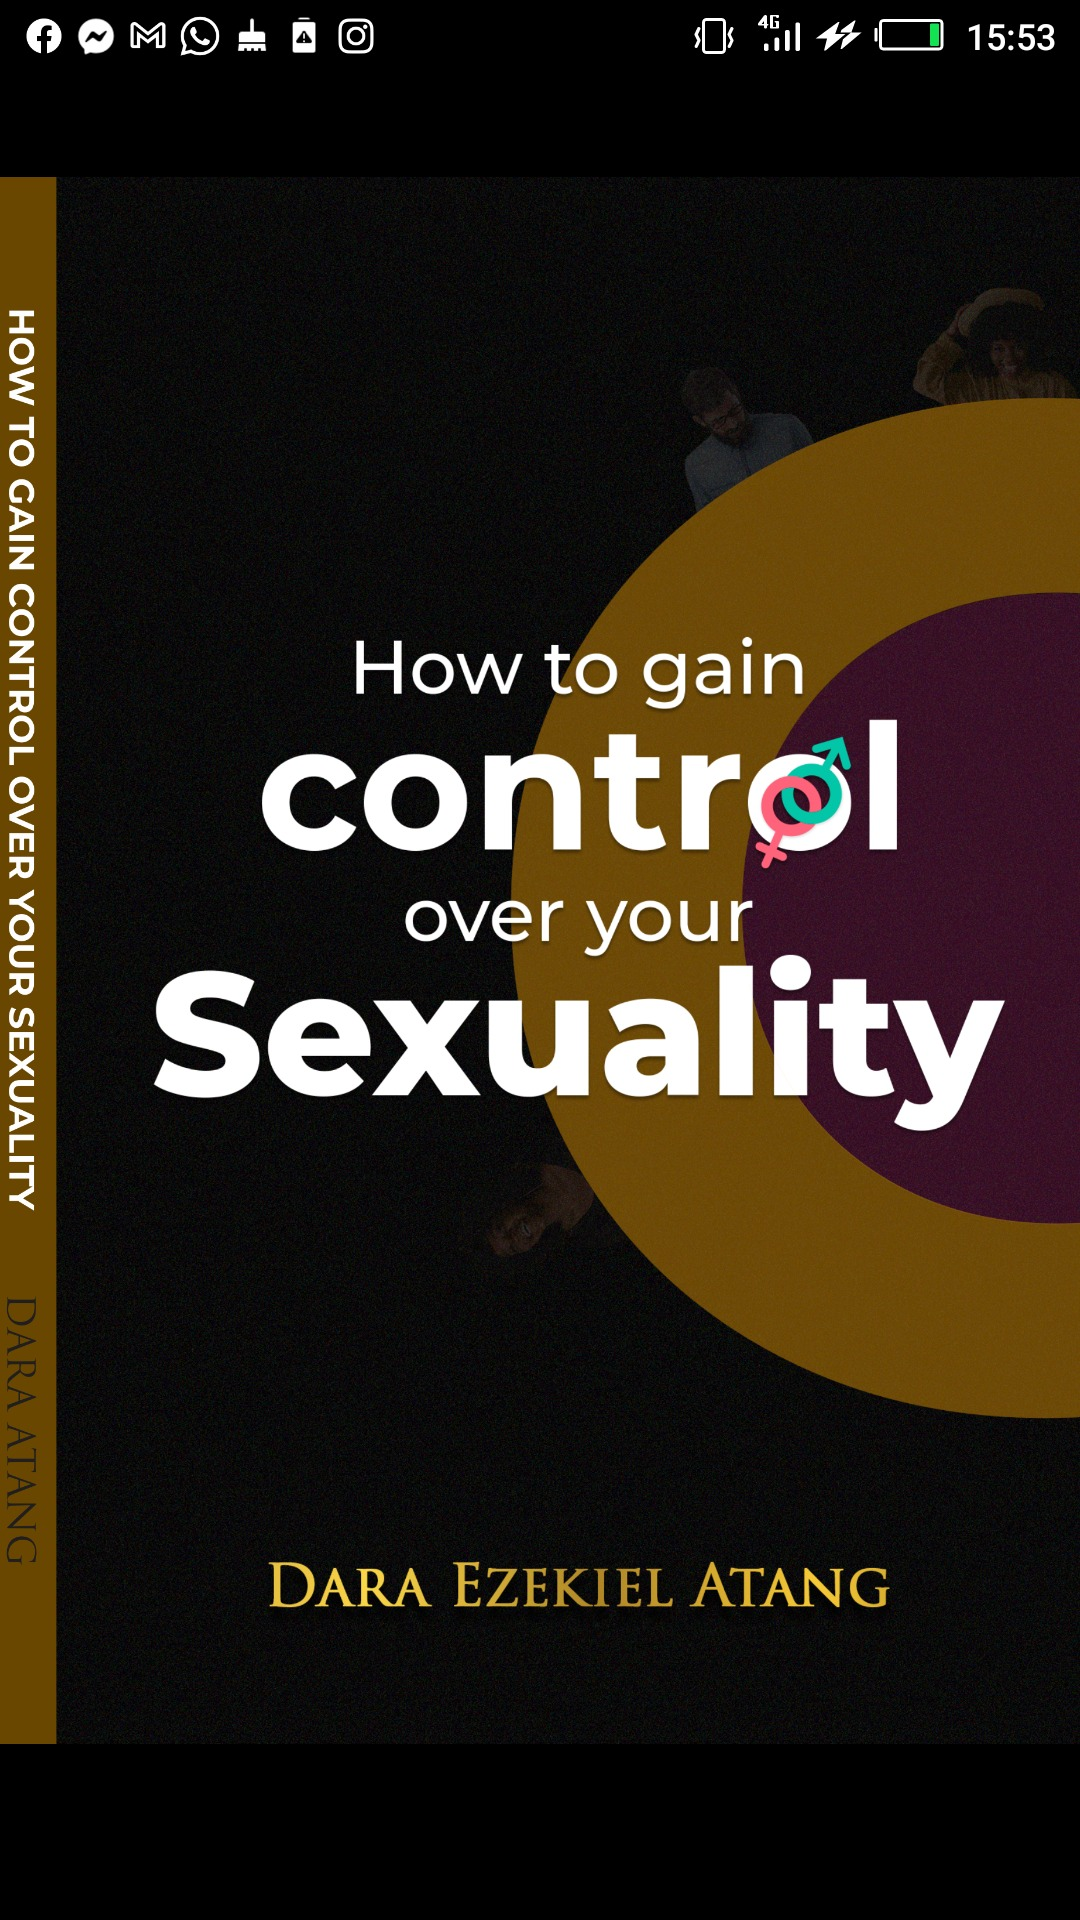 How to Gain Control Over Your Sexuality